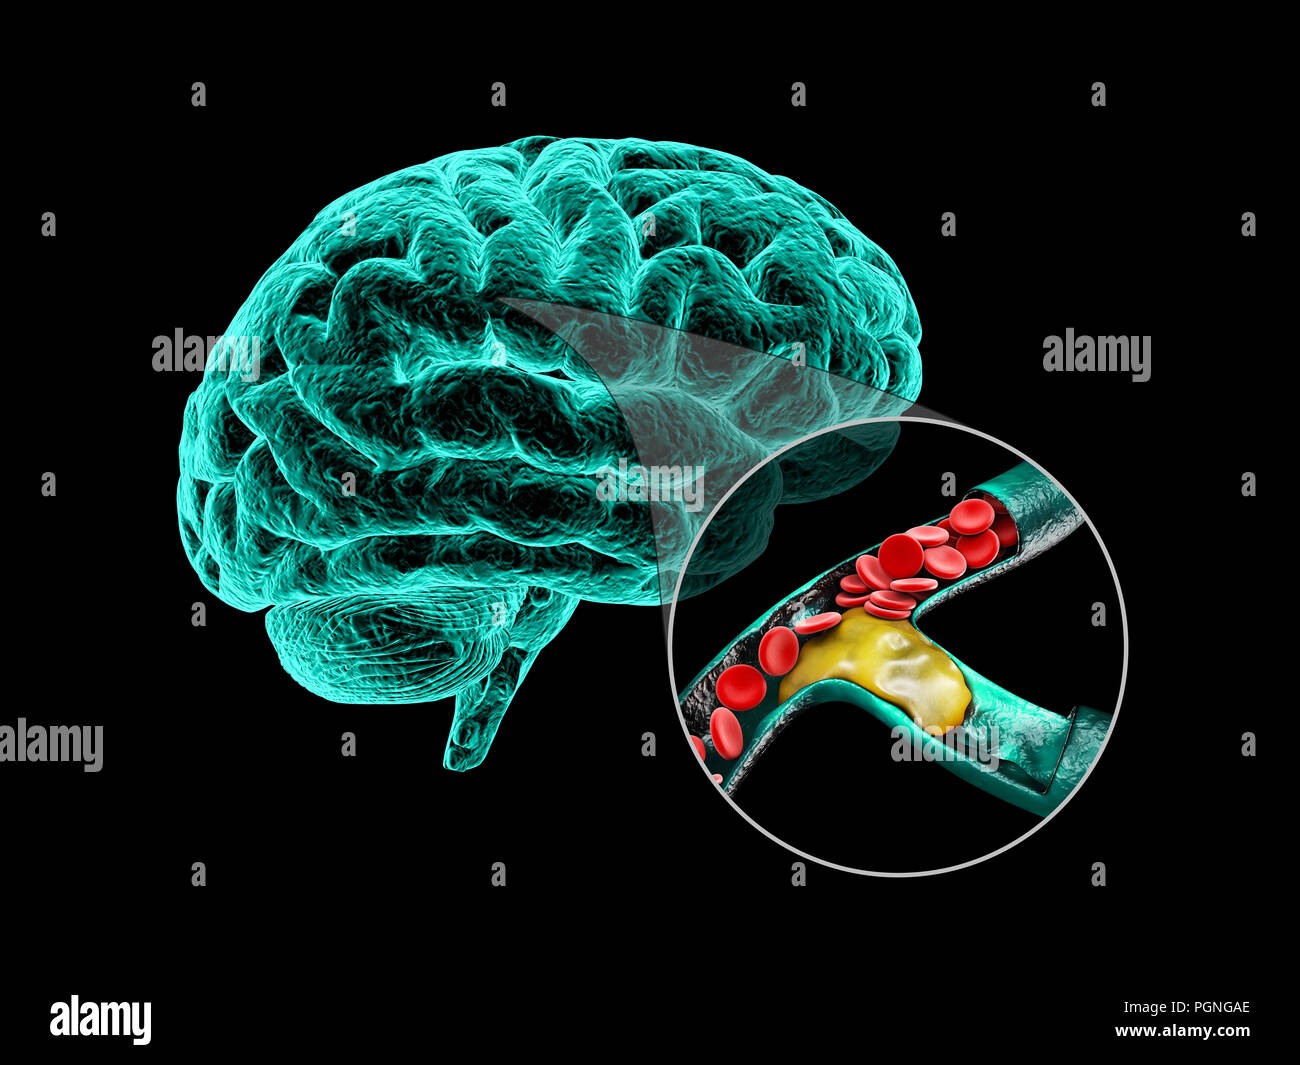 Human brain with cerebral sclerosis. Human brain anatomy 3d ...